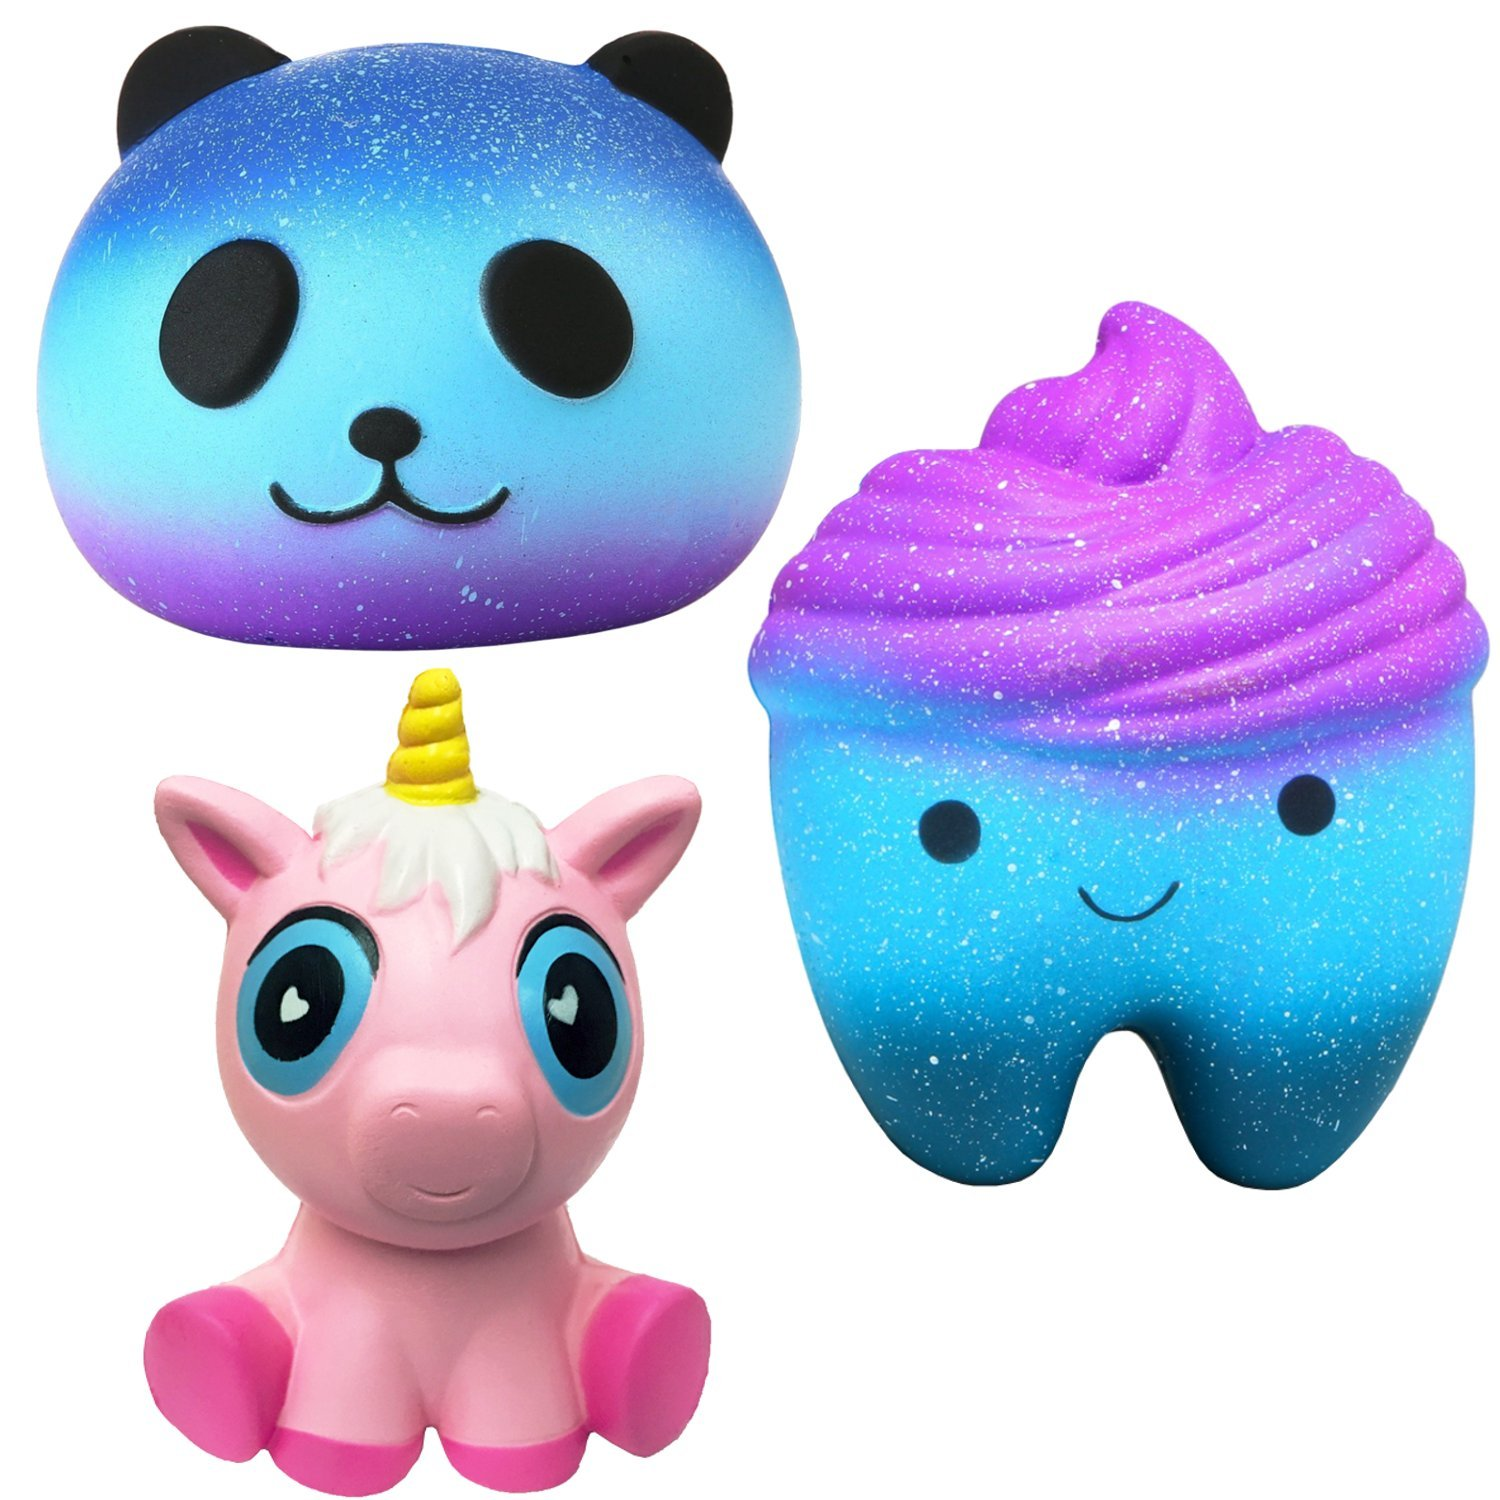 Desire Deluxe Jumbo Squishies Pack Slow Rising UK Scented Squishy Toy Squeeze Toys Stress Reliever Squishy's (Tooth Unicorn Panda Set)